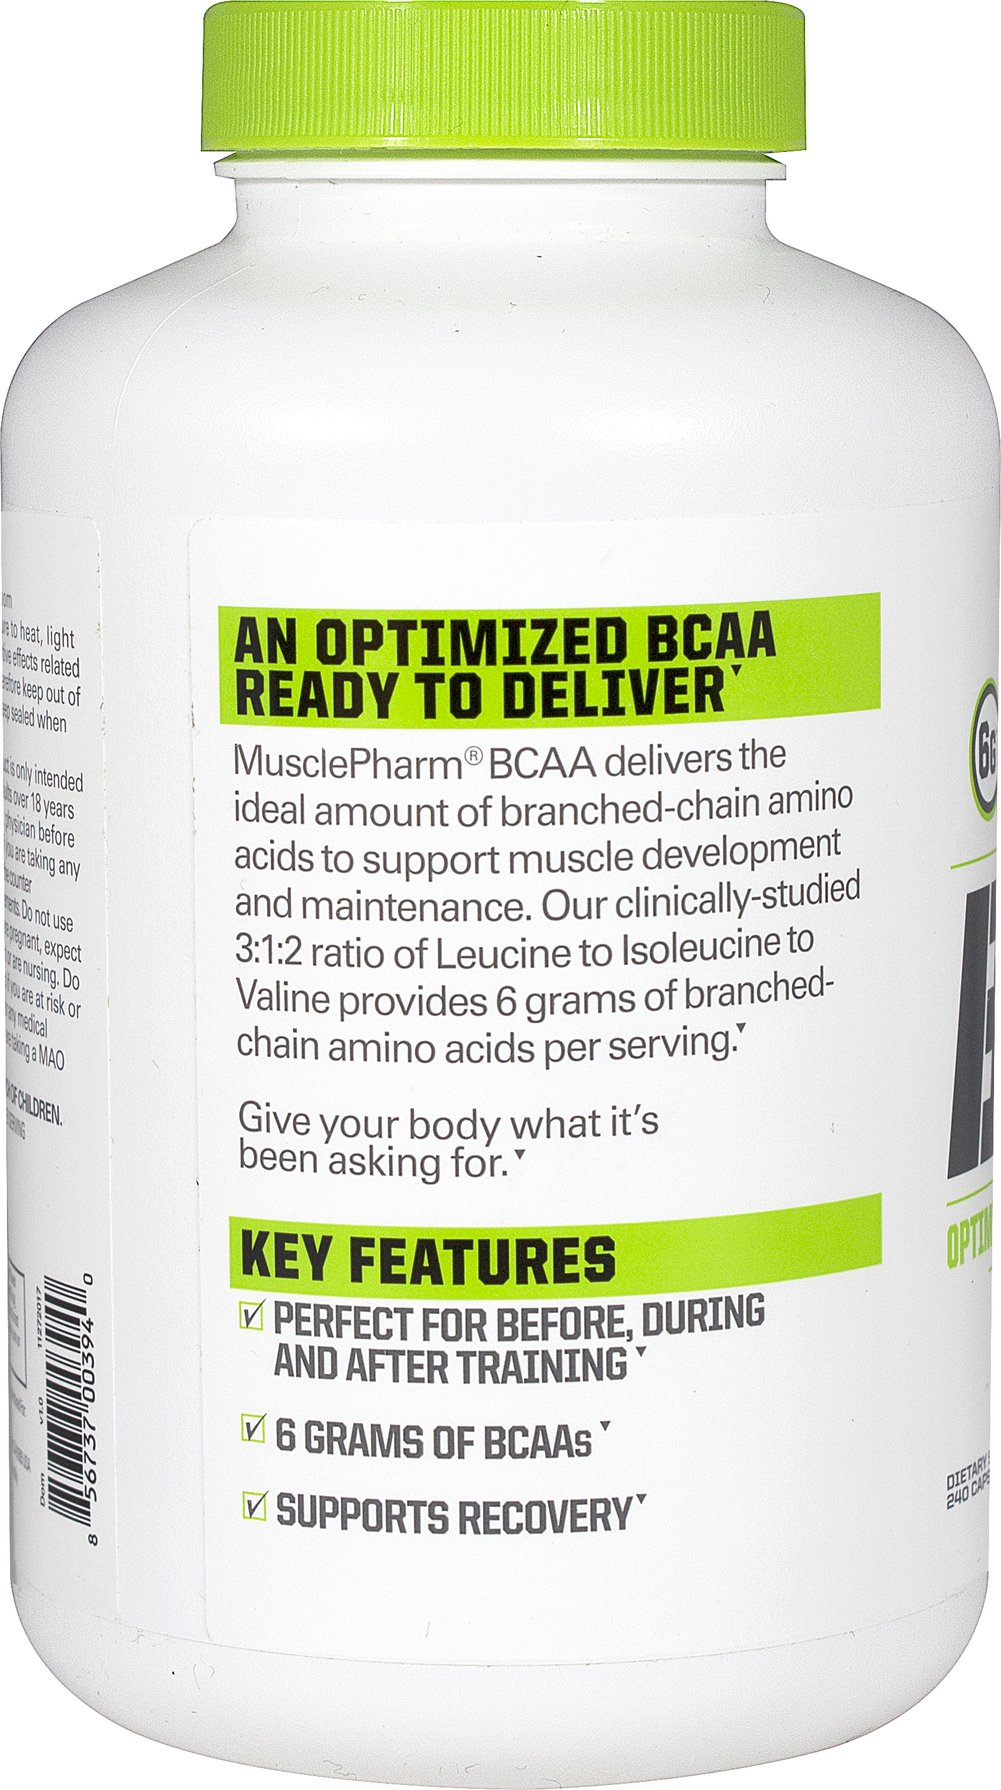 BCAA Thumbnail Alternate Bottle View